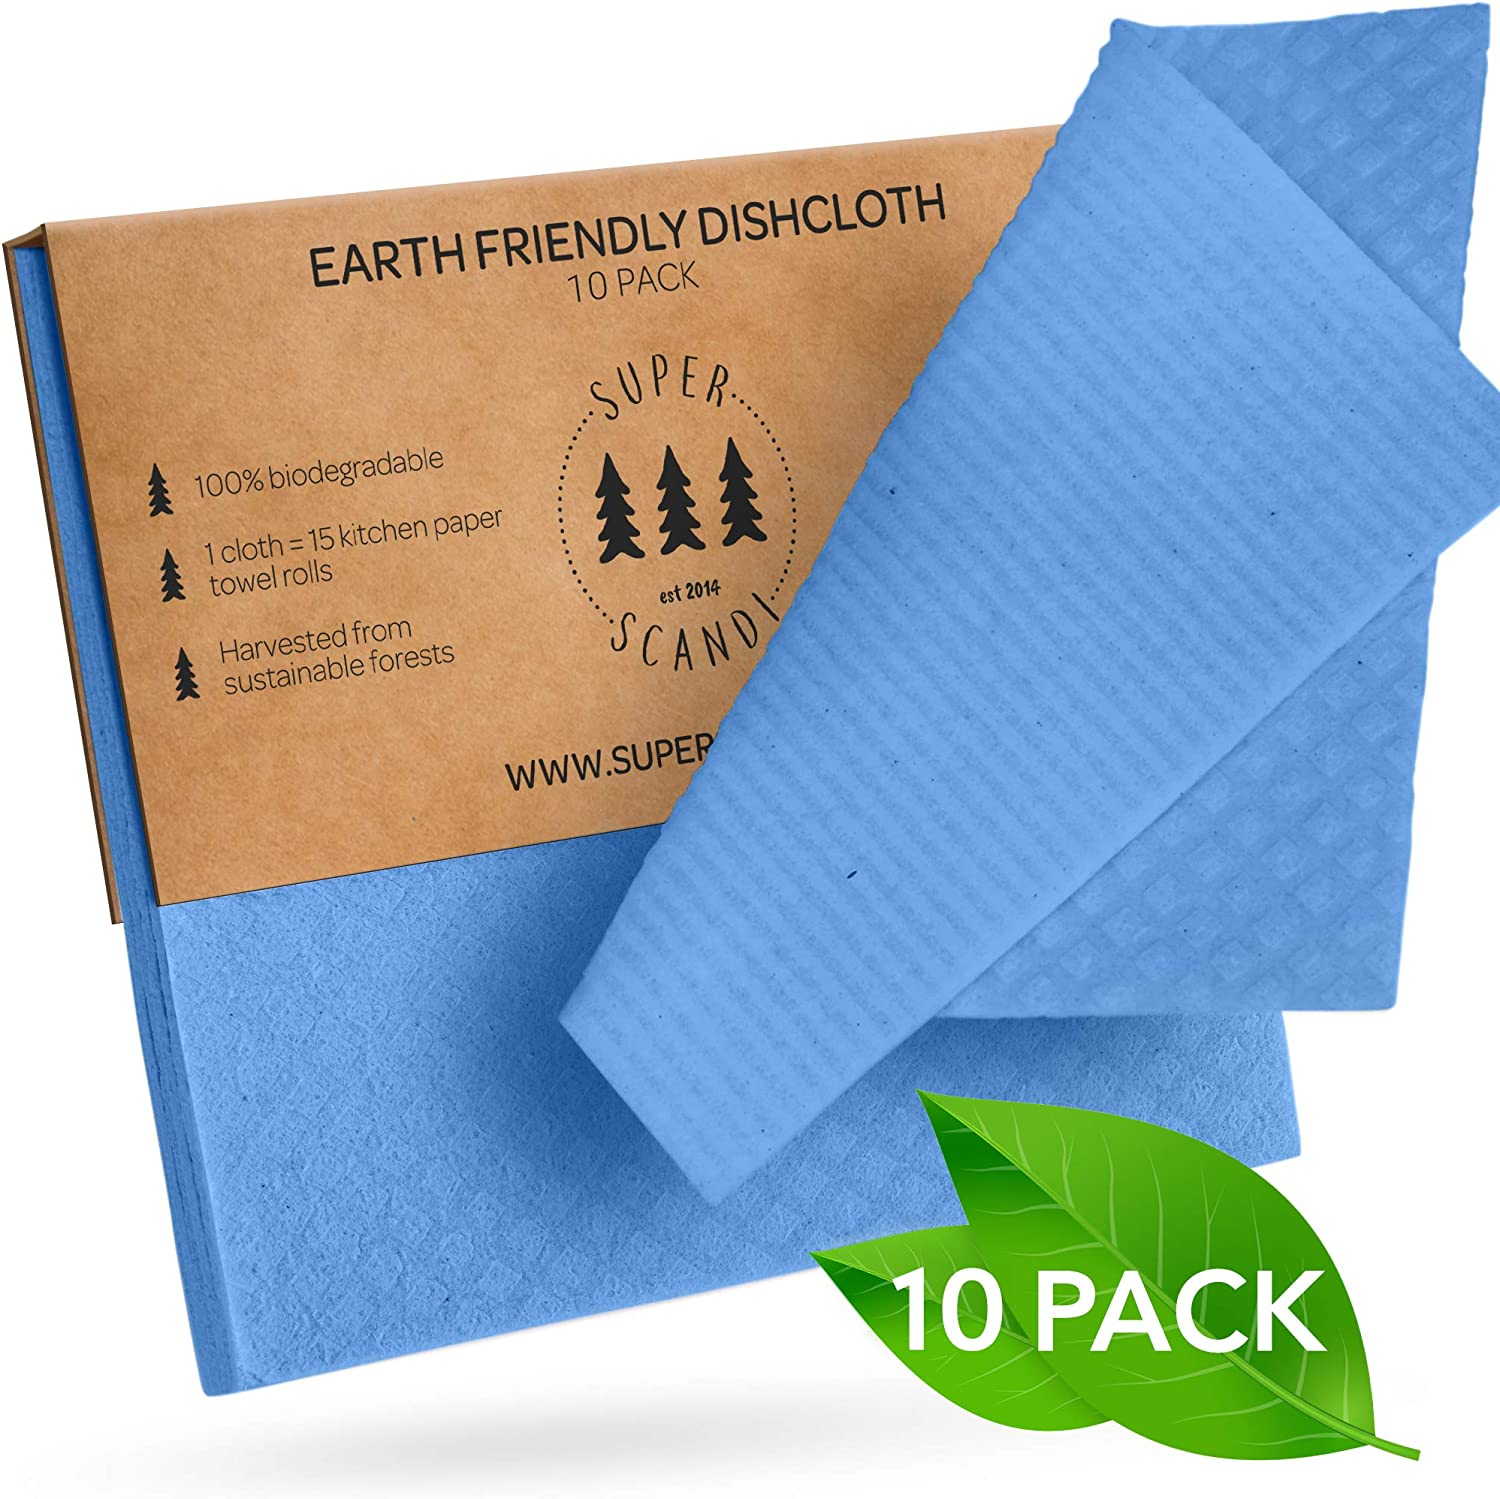 SUPERSCANDI Swedish Dishcloths Eco Friendly Reusable Sustainable Biodegradable Cellulose Sponge Cleaning Cloths for Kitchen Dish Rags Washing Wipes Paper Towel Replacement Washcloths (10 Pack Blue)